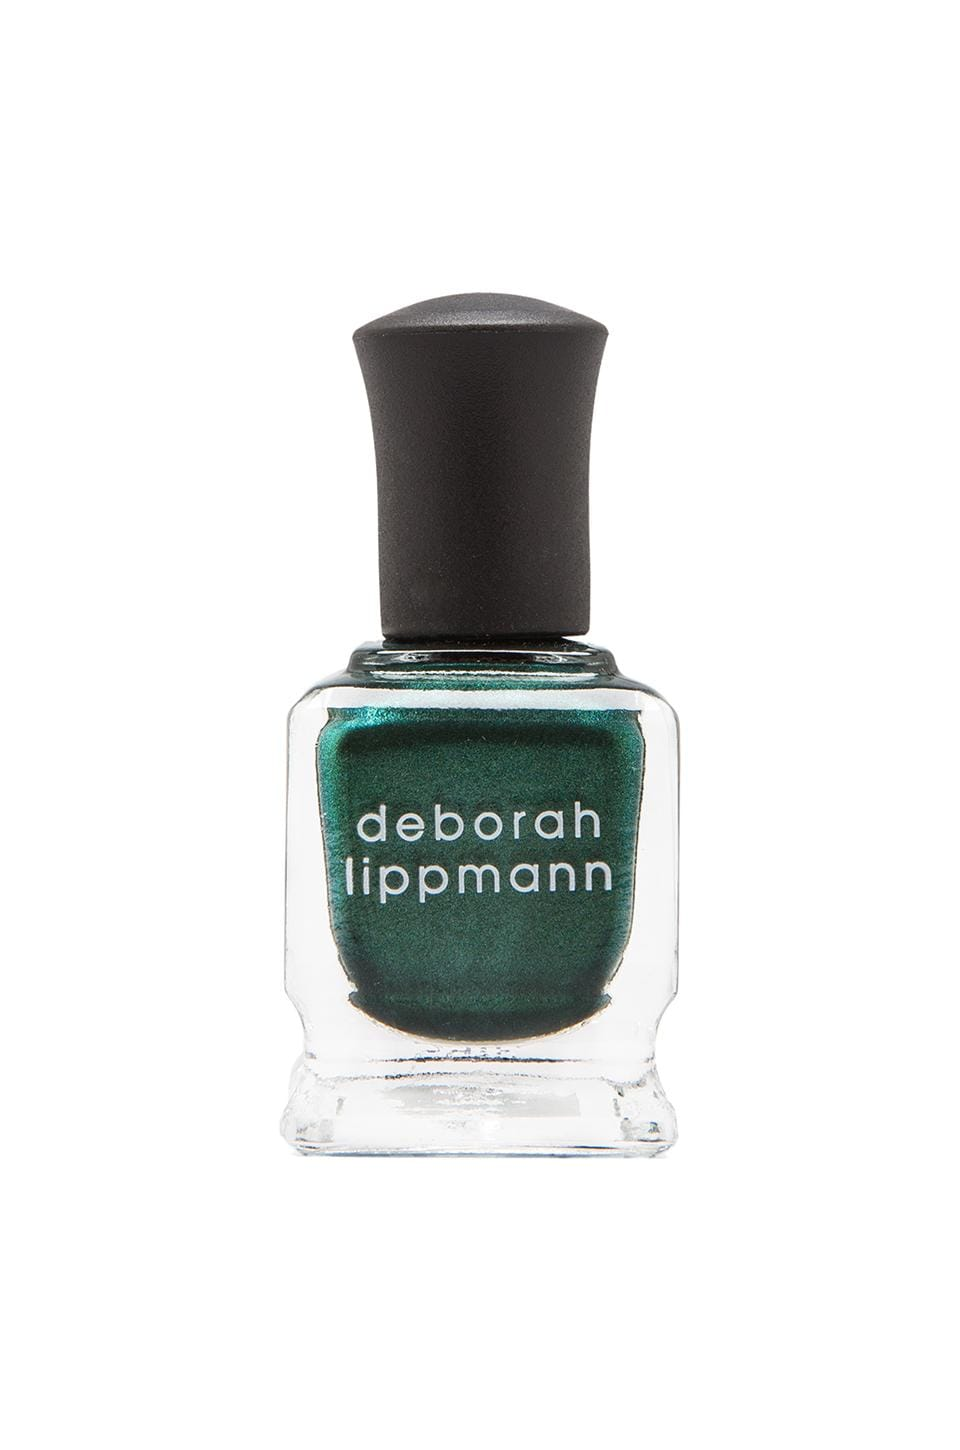 Deborah Lippmann Nail Lacquer in Laughin' To The Bank